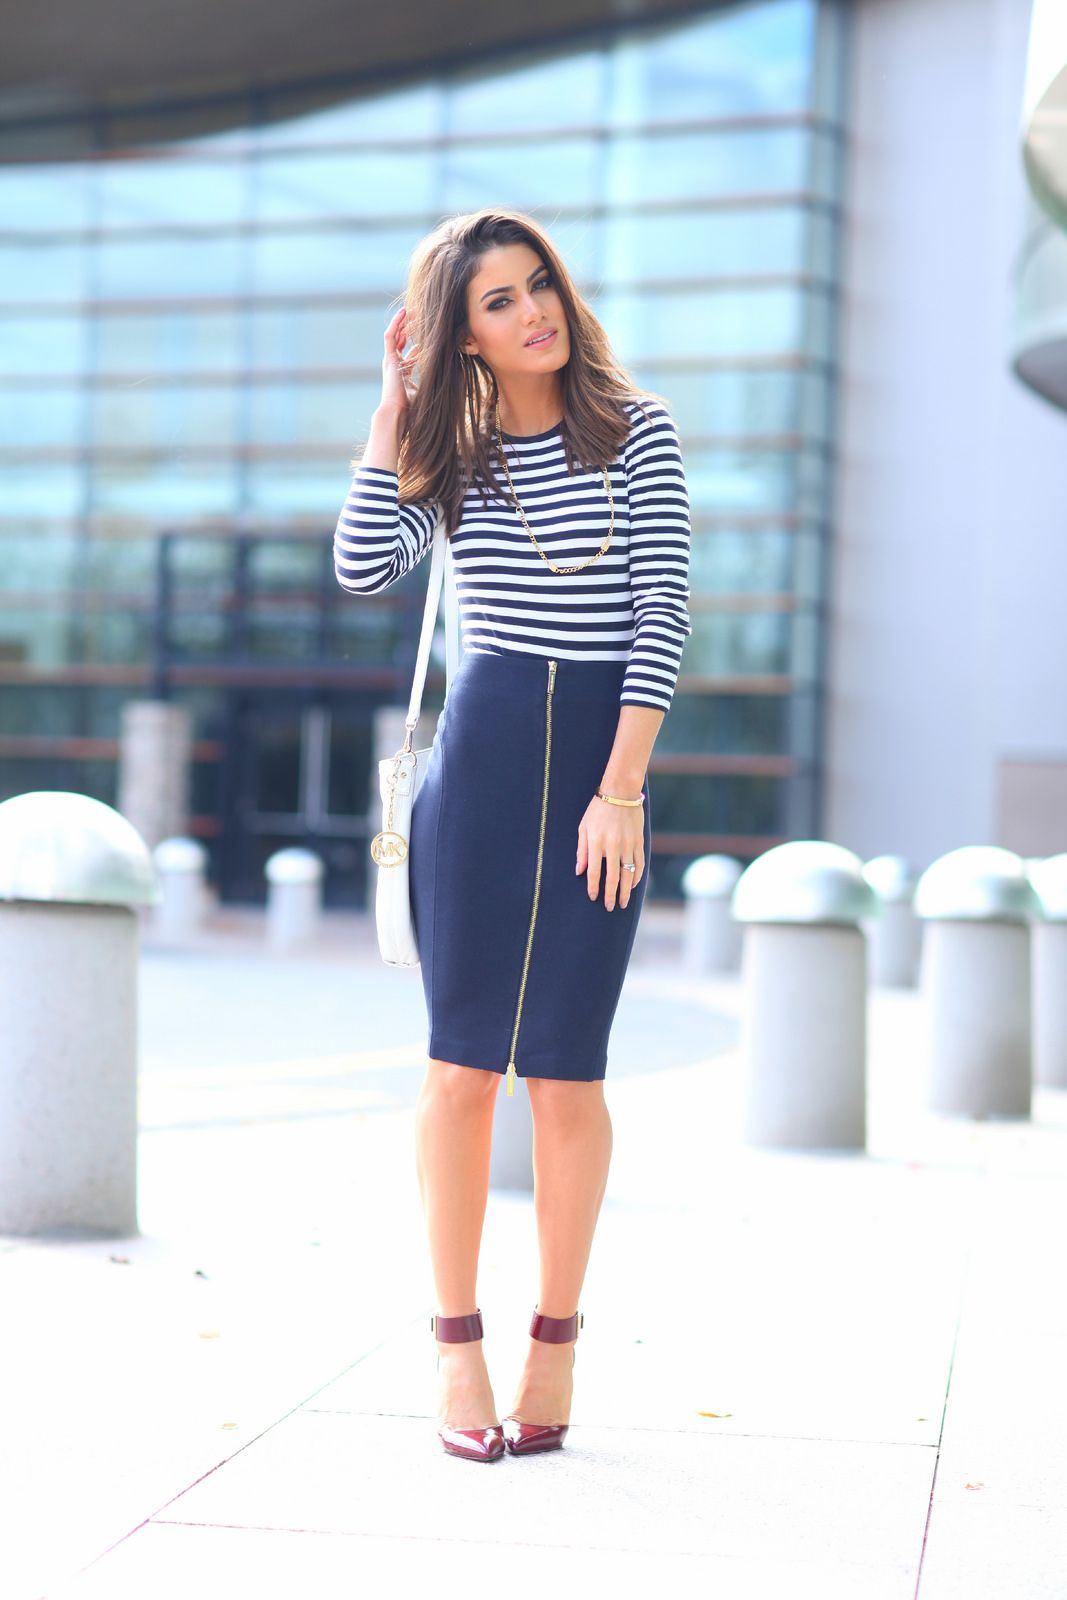 Suficiente Look do dia: Chic Navy style | Blusas listradas, Saia lapis e Lápis NB24